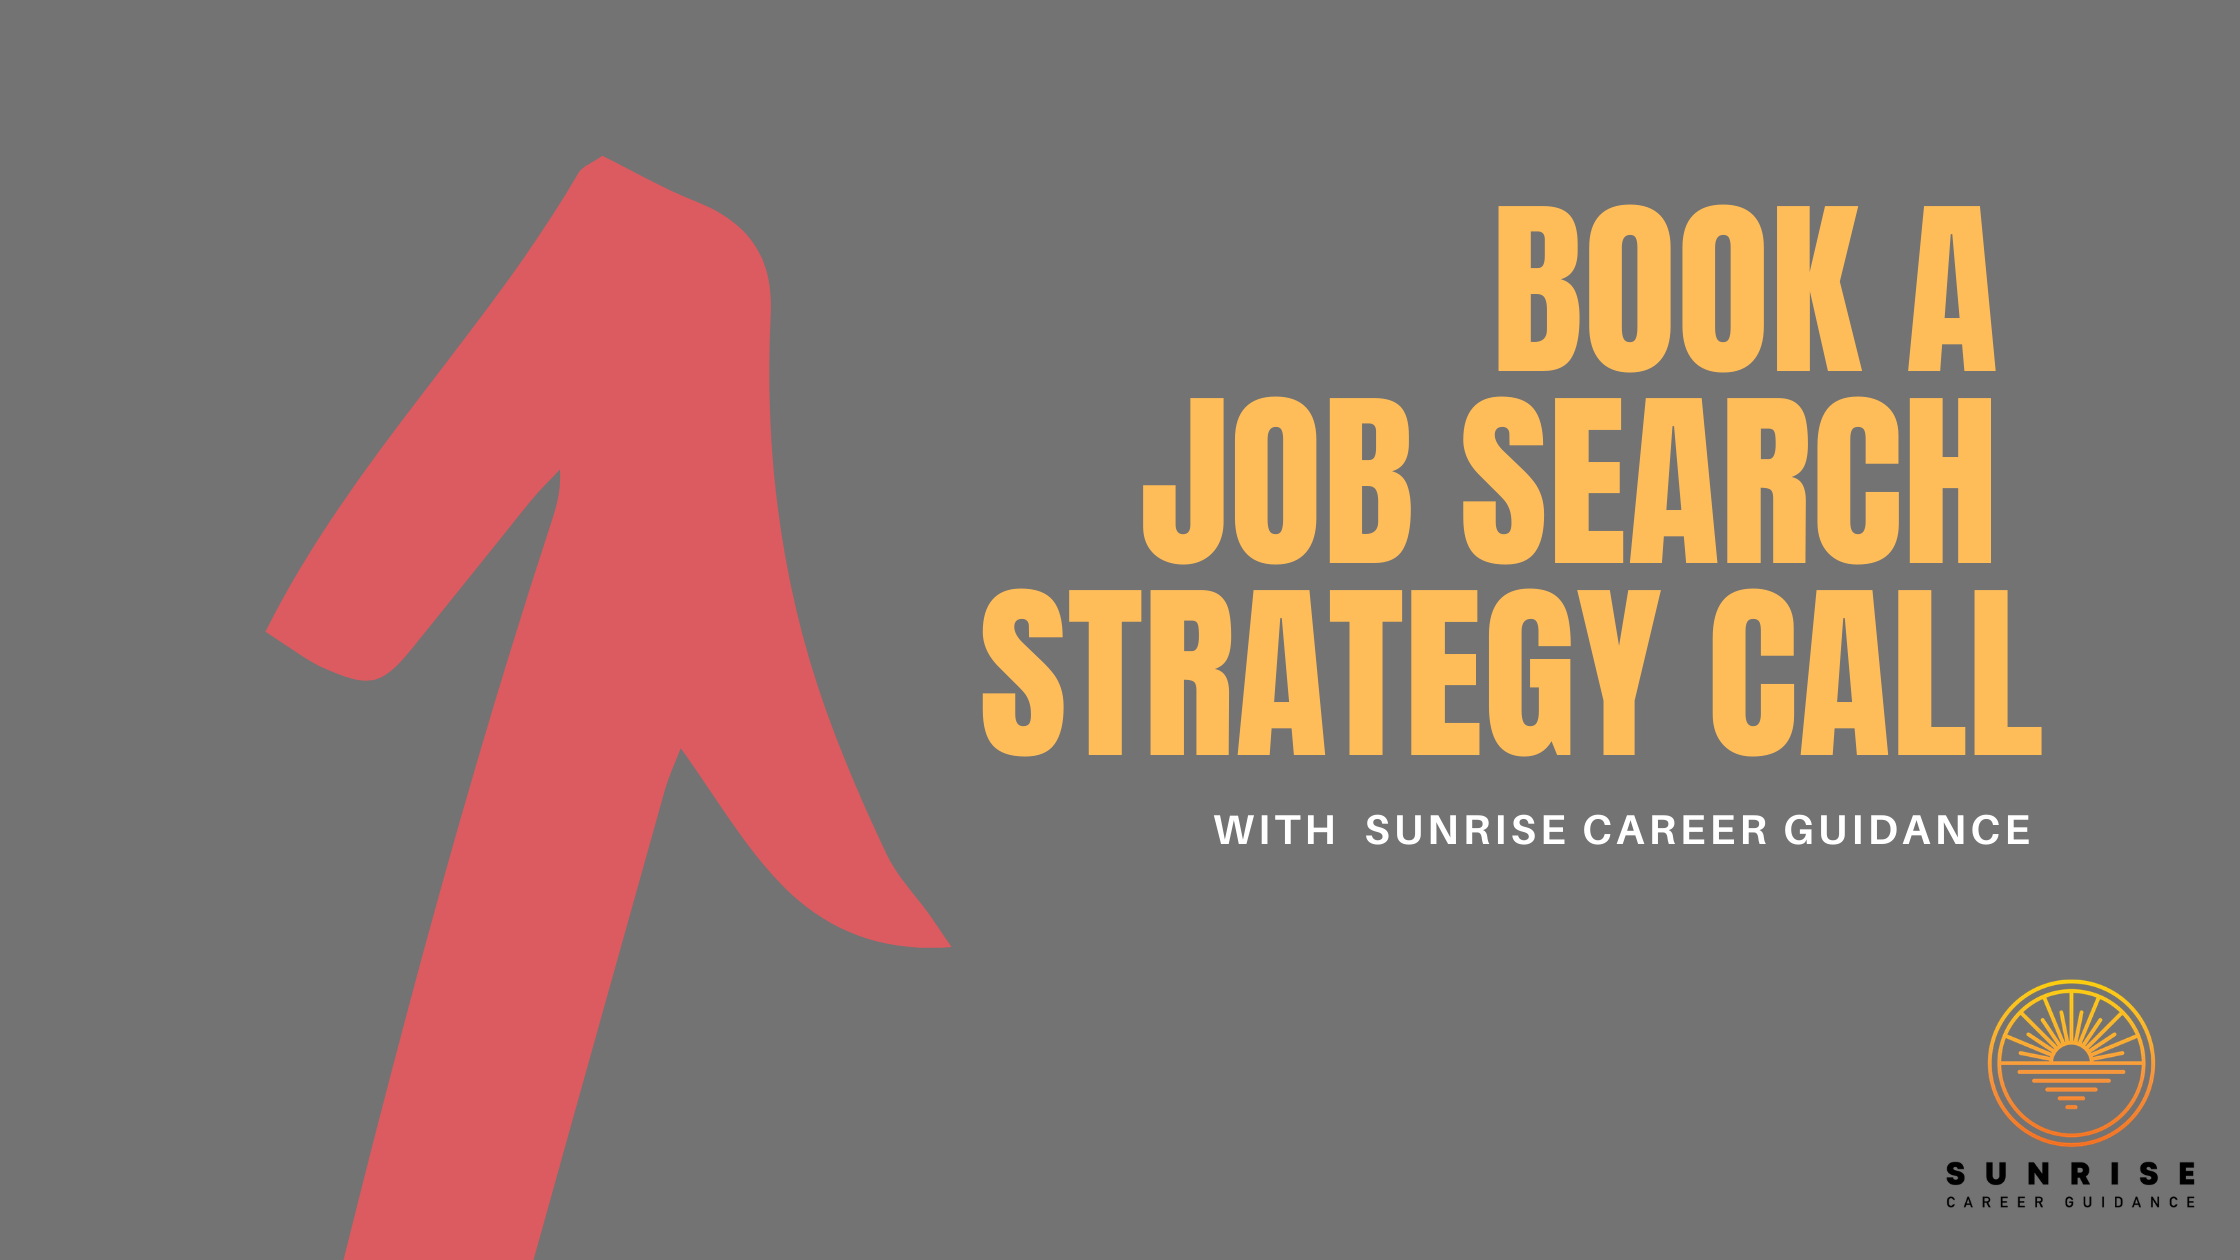 job-search-strategy-call-sunrise-career-guidance